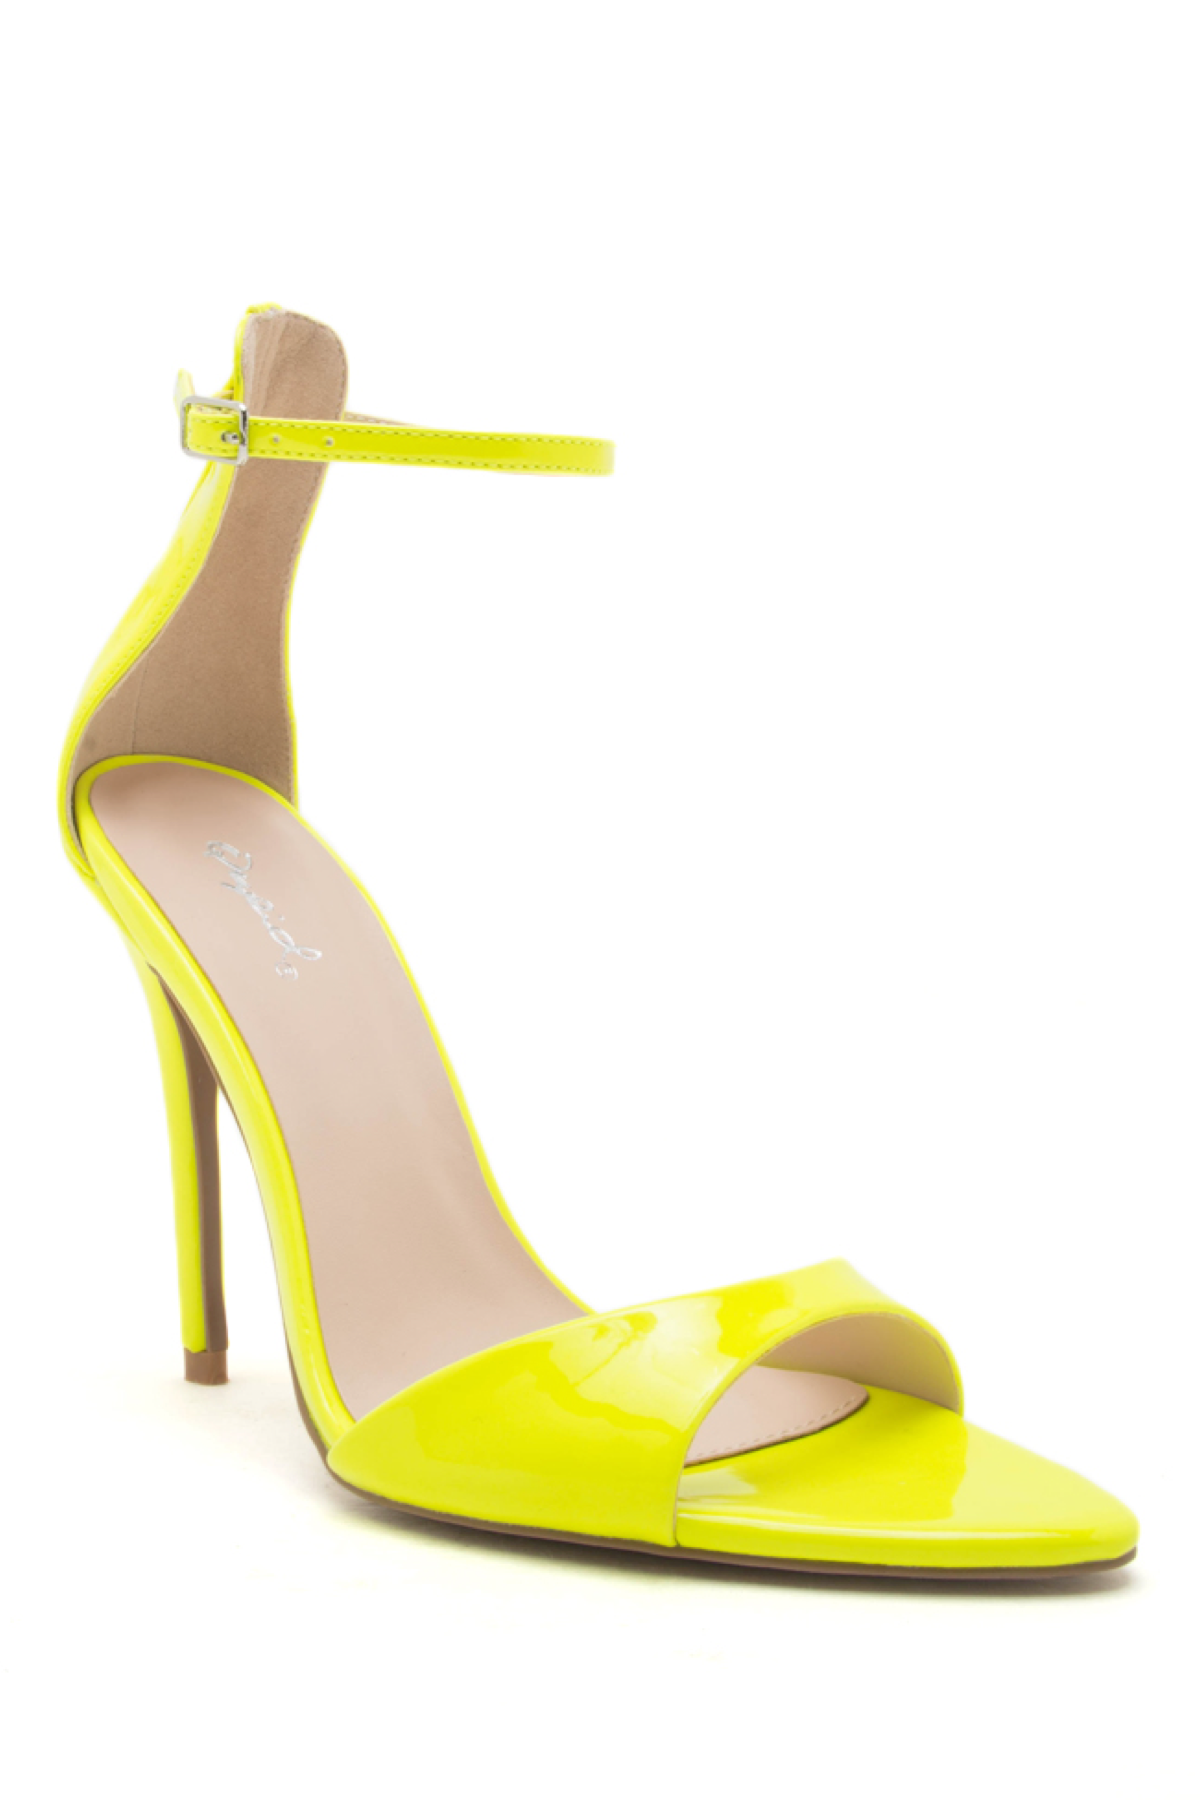 Mia Neon Heel - Neon Yelllow | Qupid